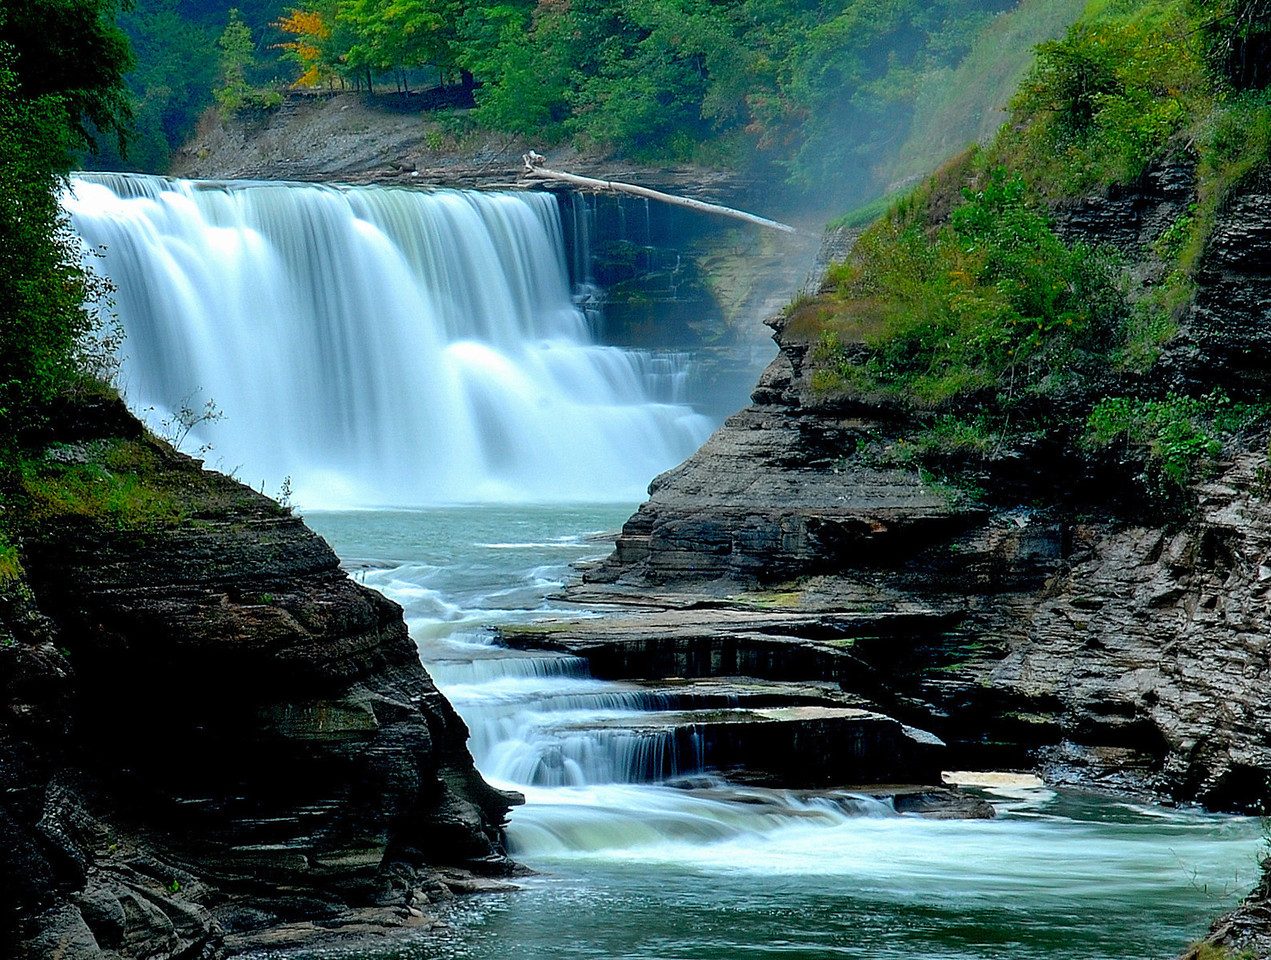 Letchworth State Park,NY